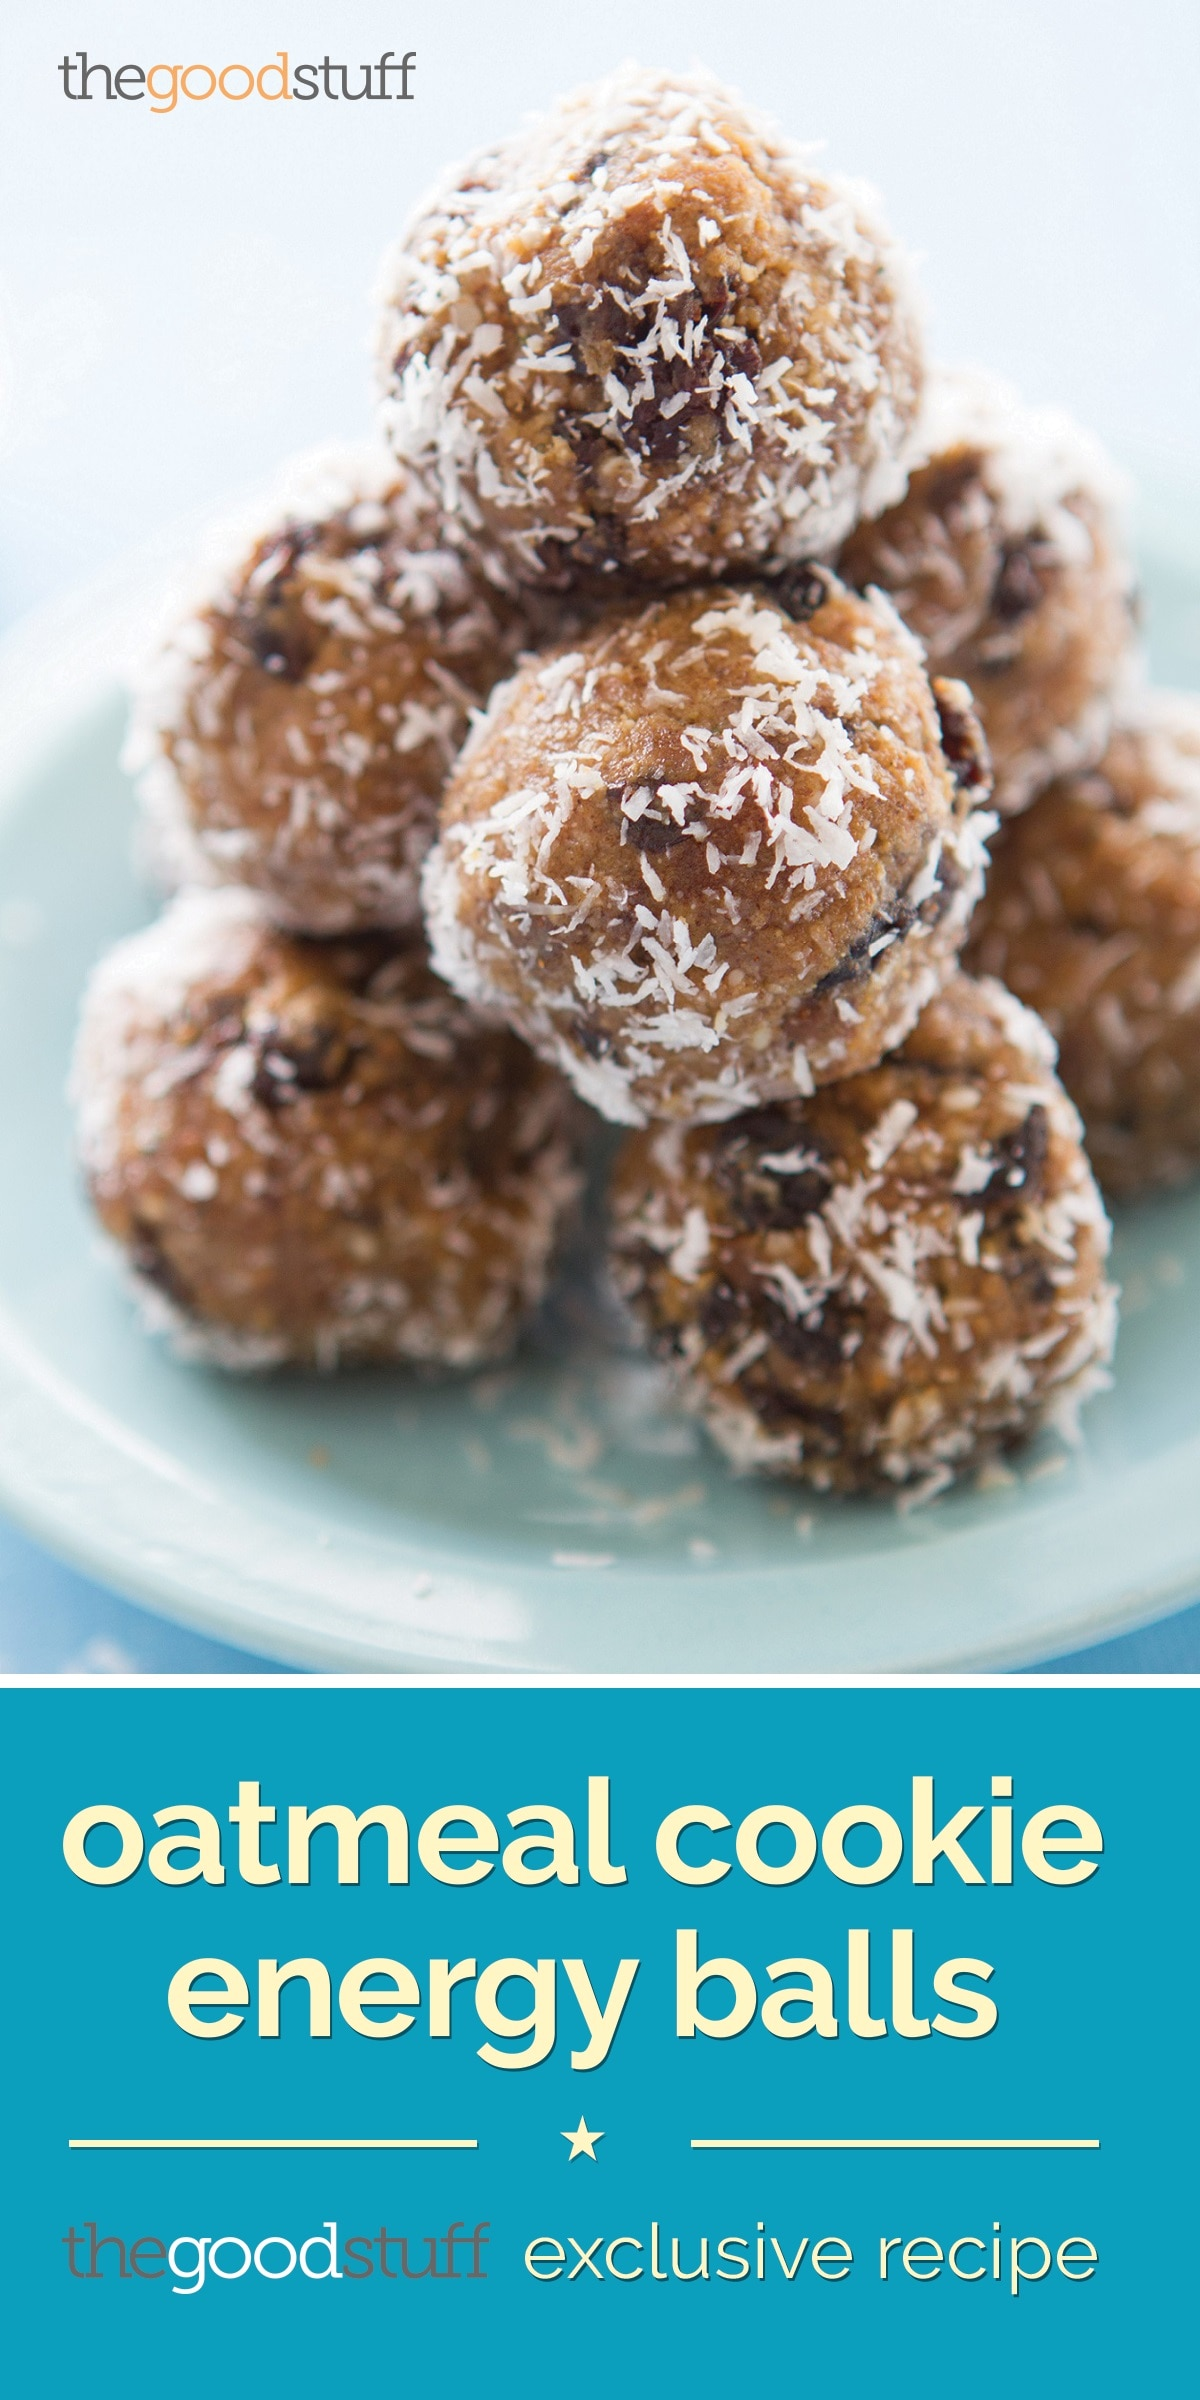 food-oatmeal-cookie-energy-balls